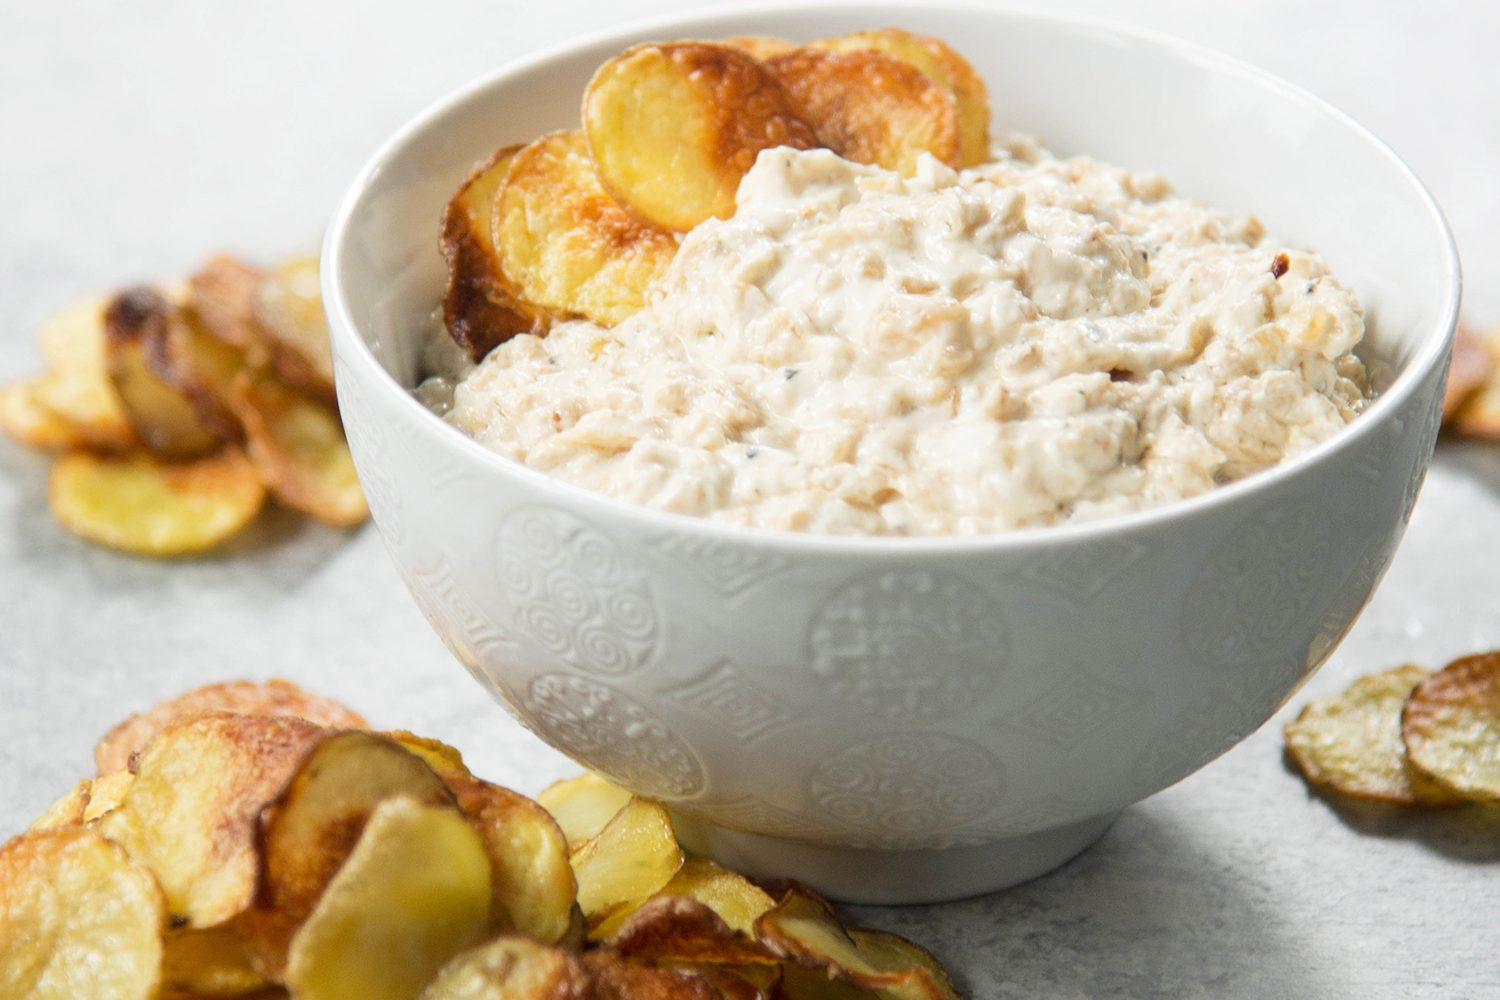 Caramelized Onion Dip with Baked Potato Chips